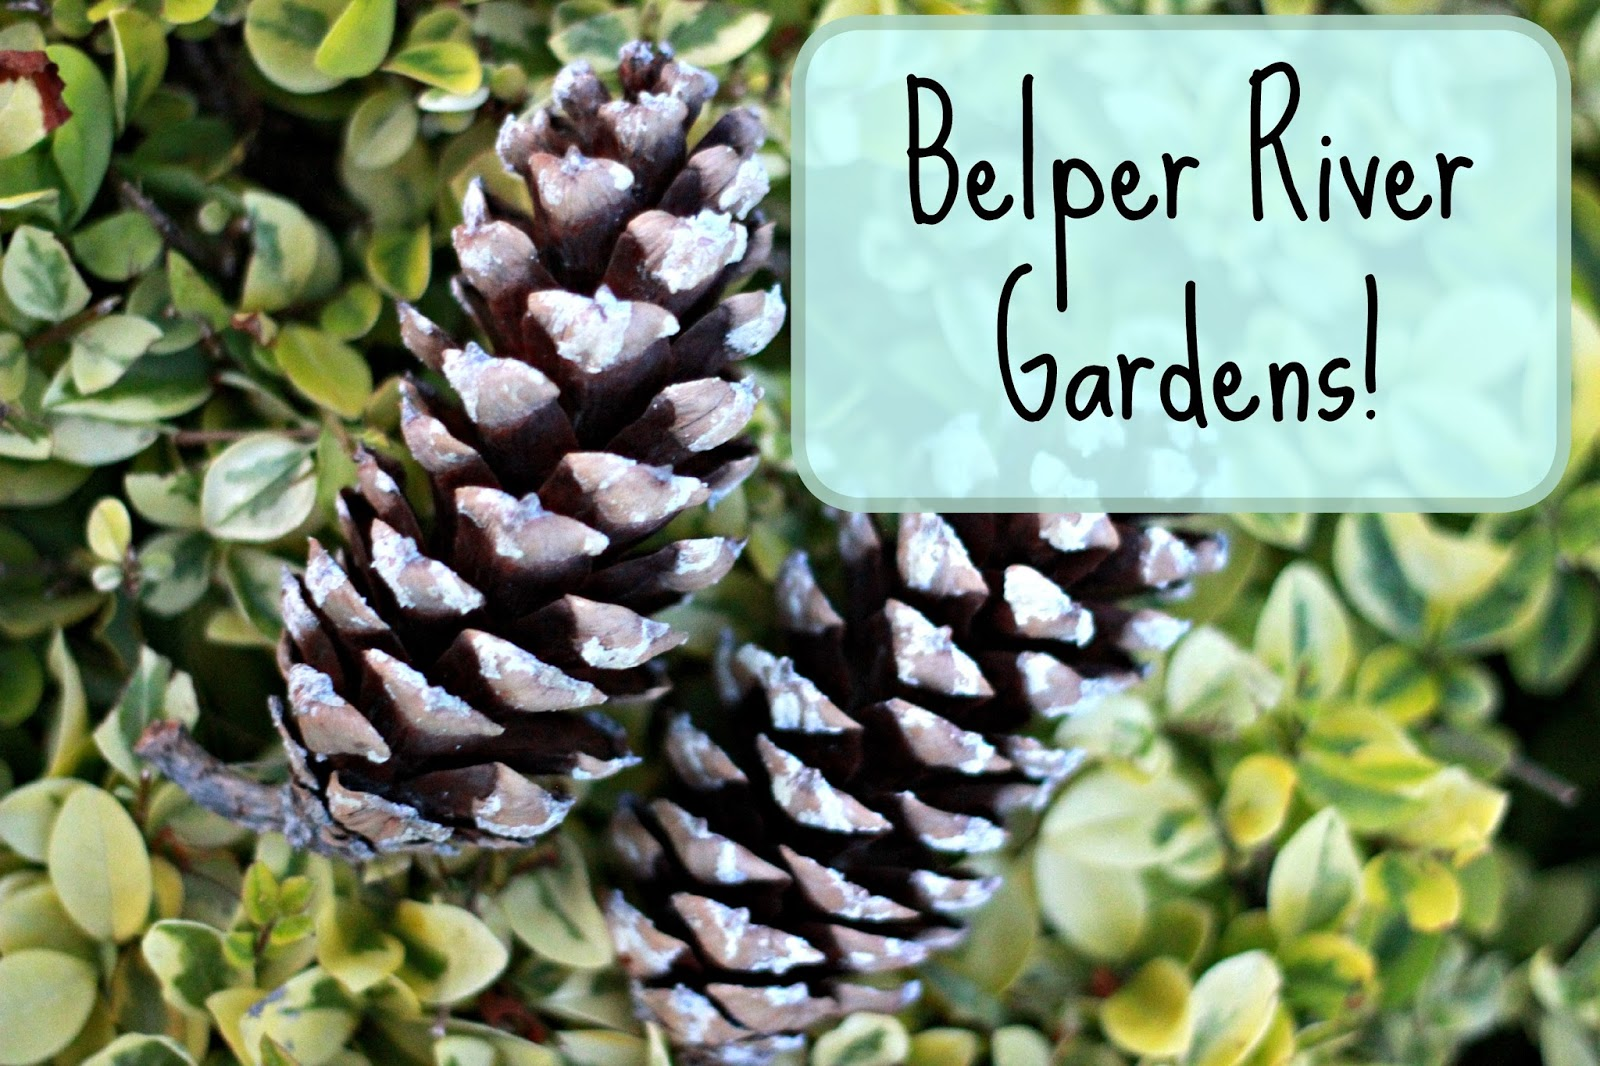 Belper River Gardens